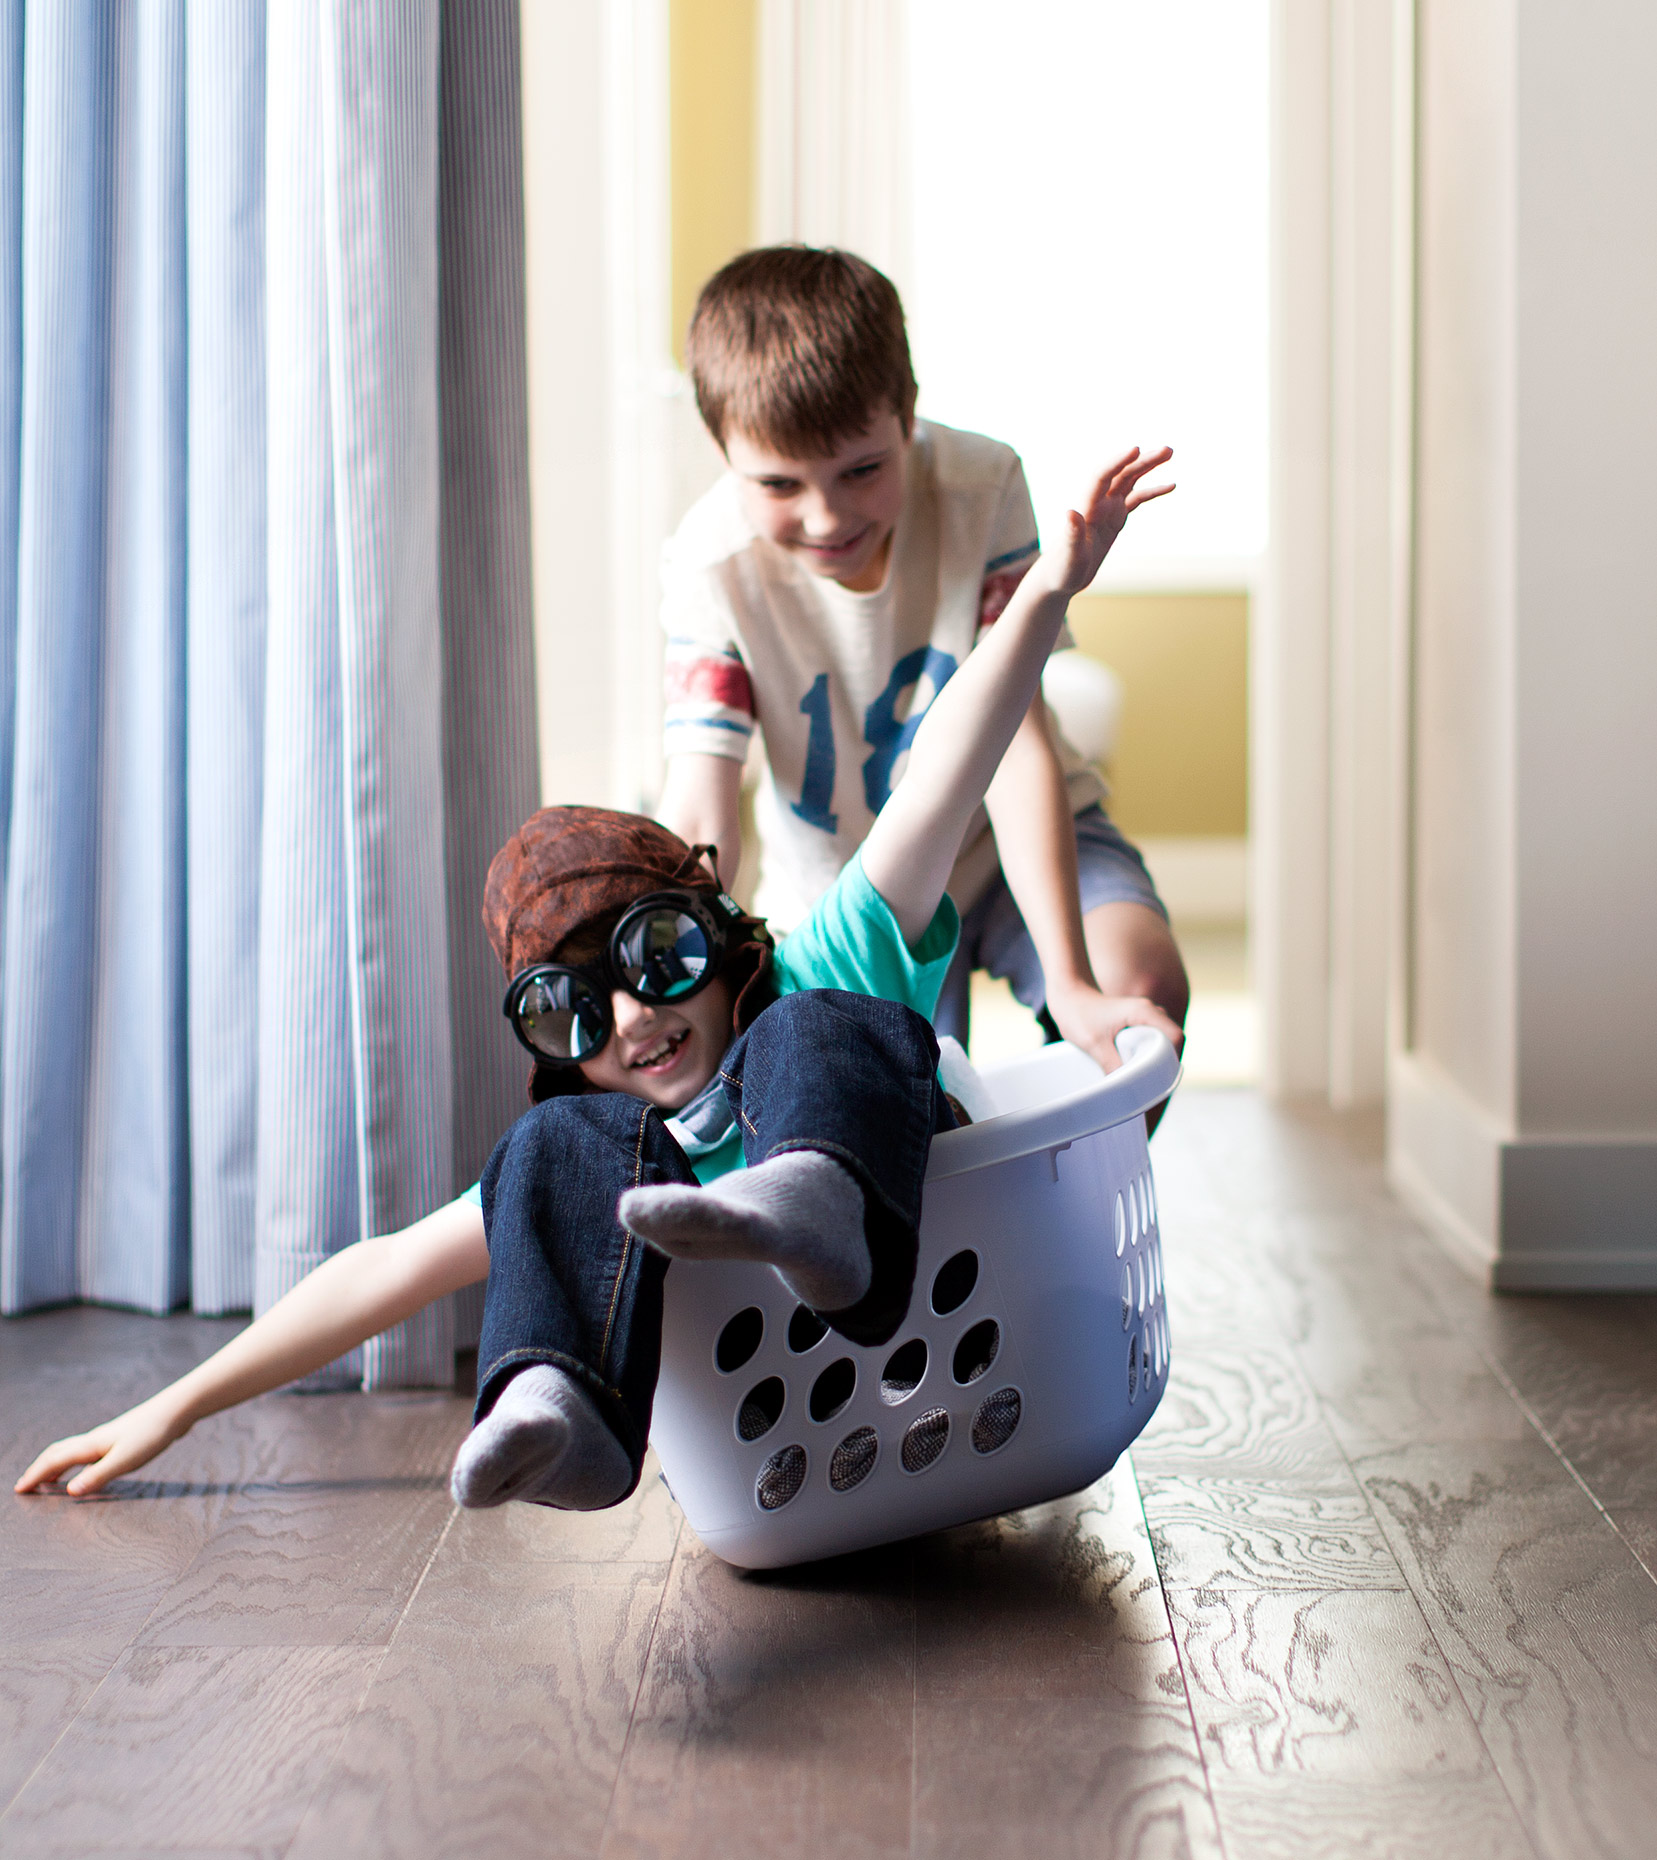 Laundry-Basket-1